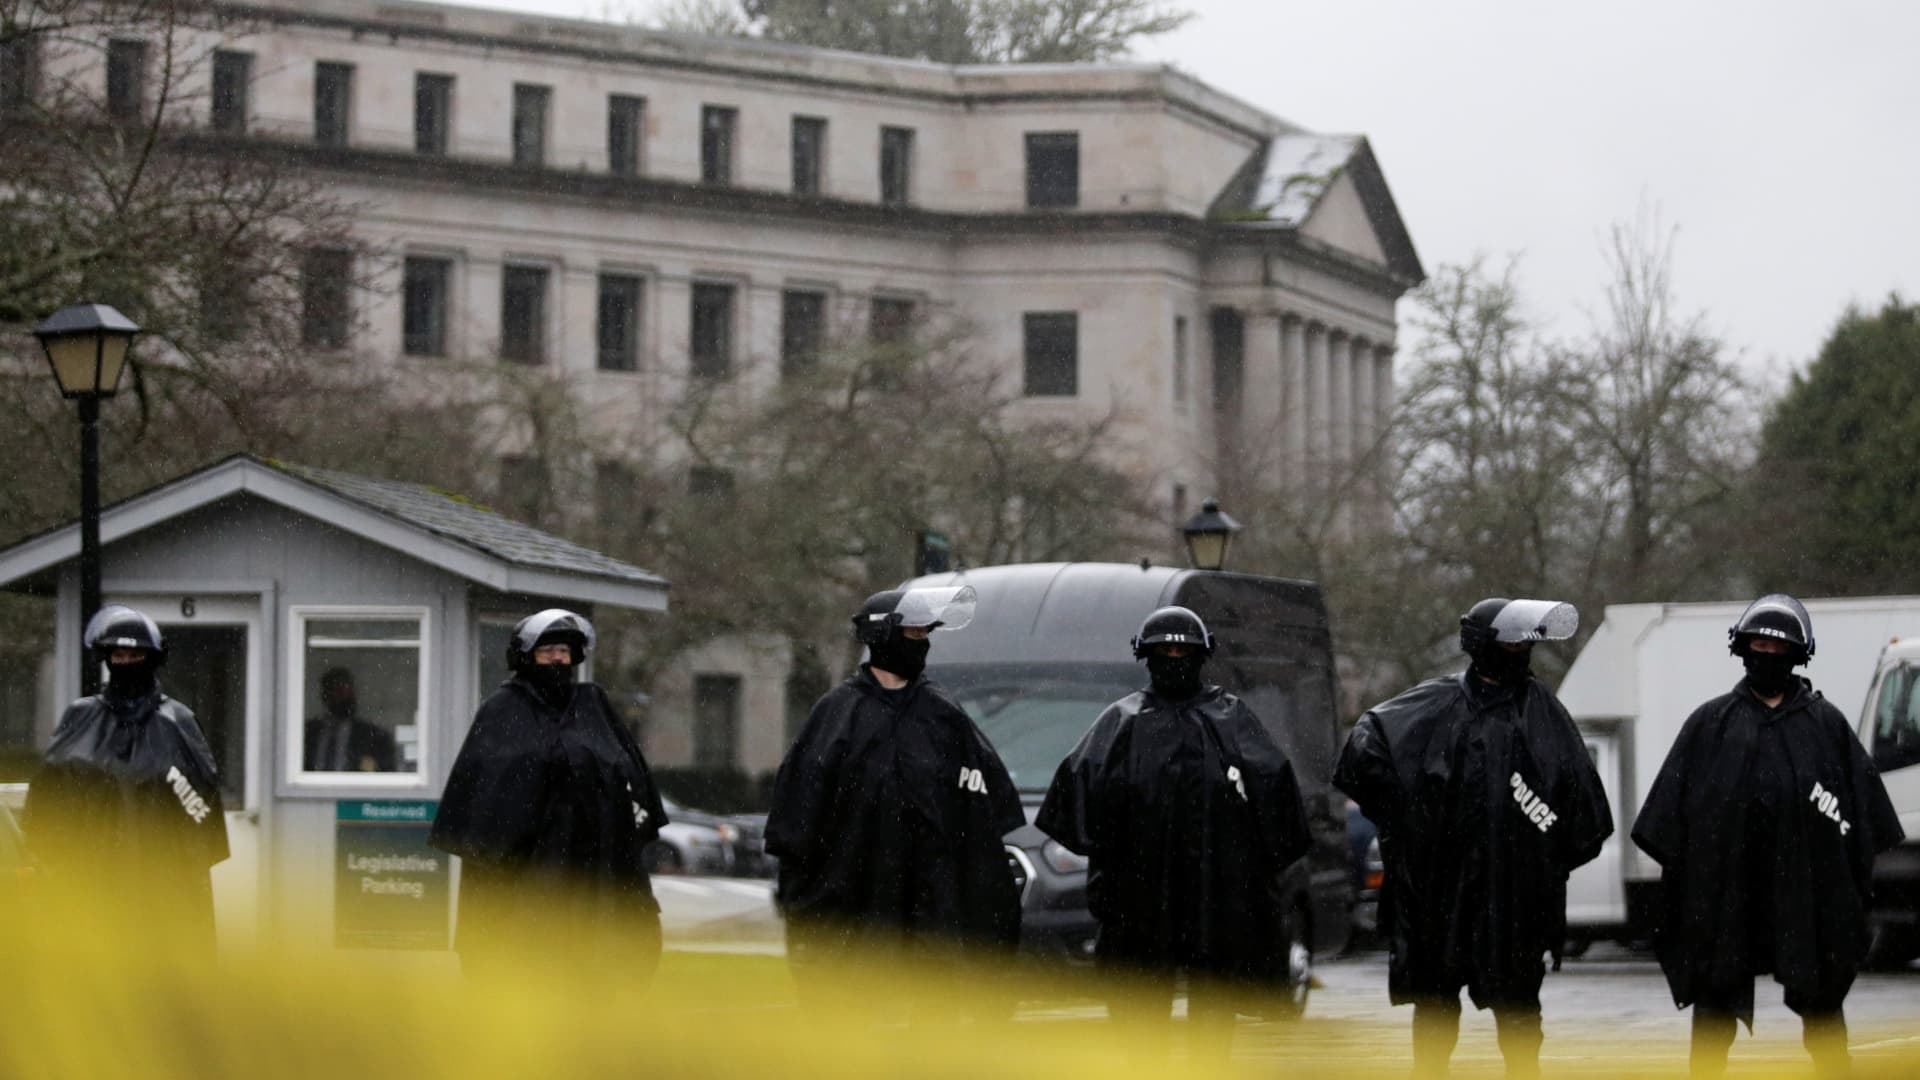 Members of the Washington State Patrol stand guard outside the Washington State Capitol Building as the 2021 Legislative session begins in Olympia, Washington, January 11, 2021.